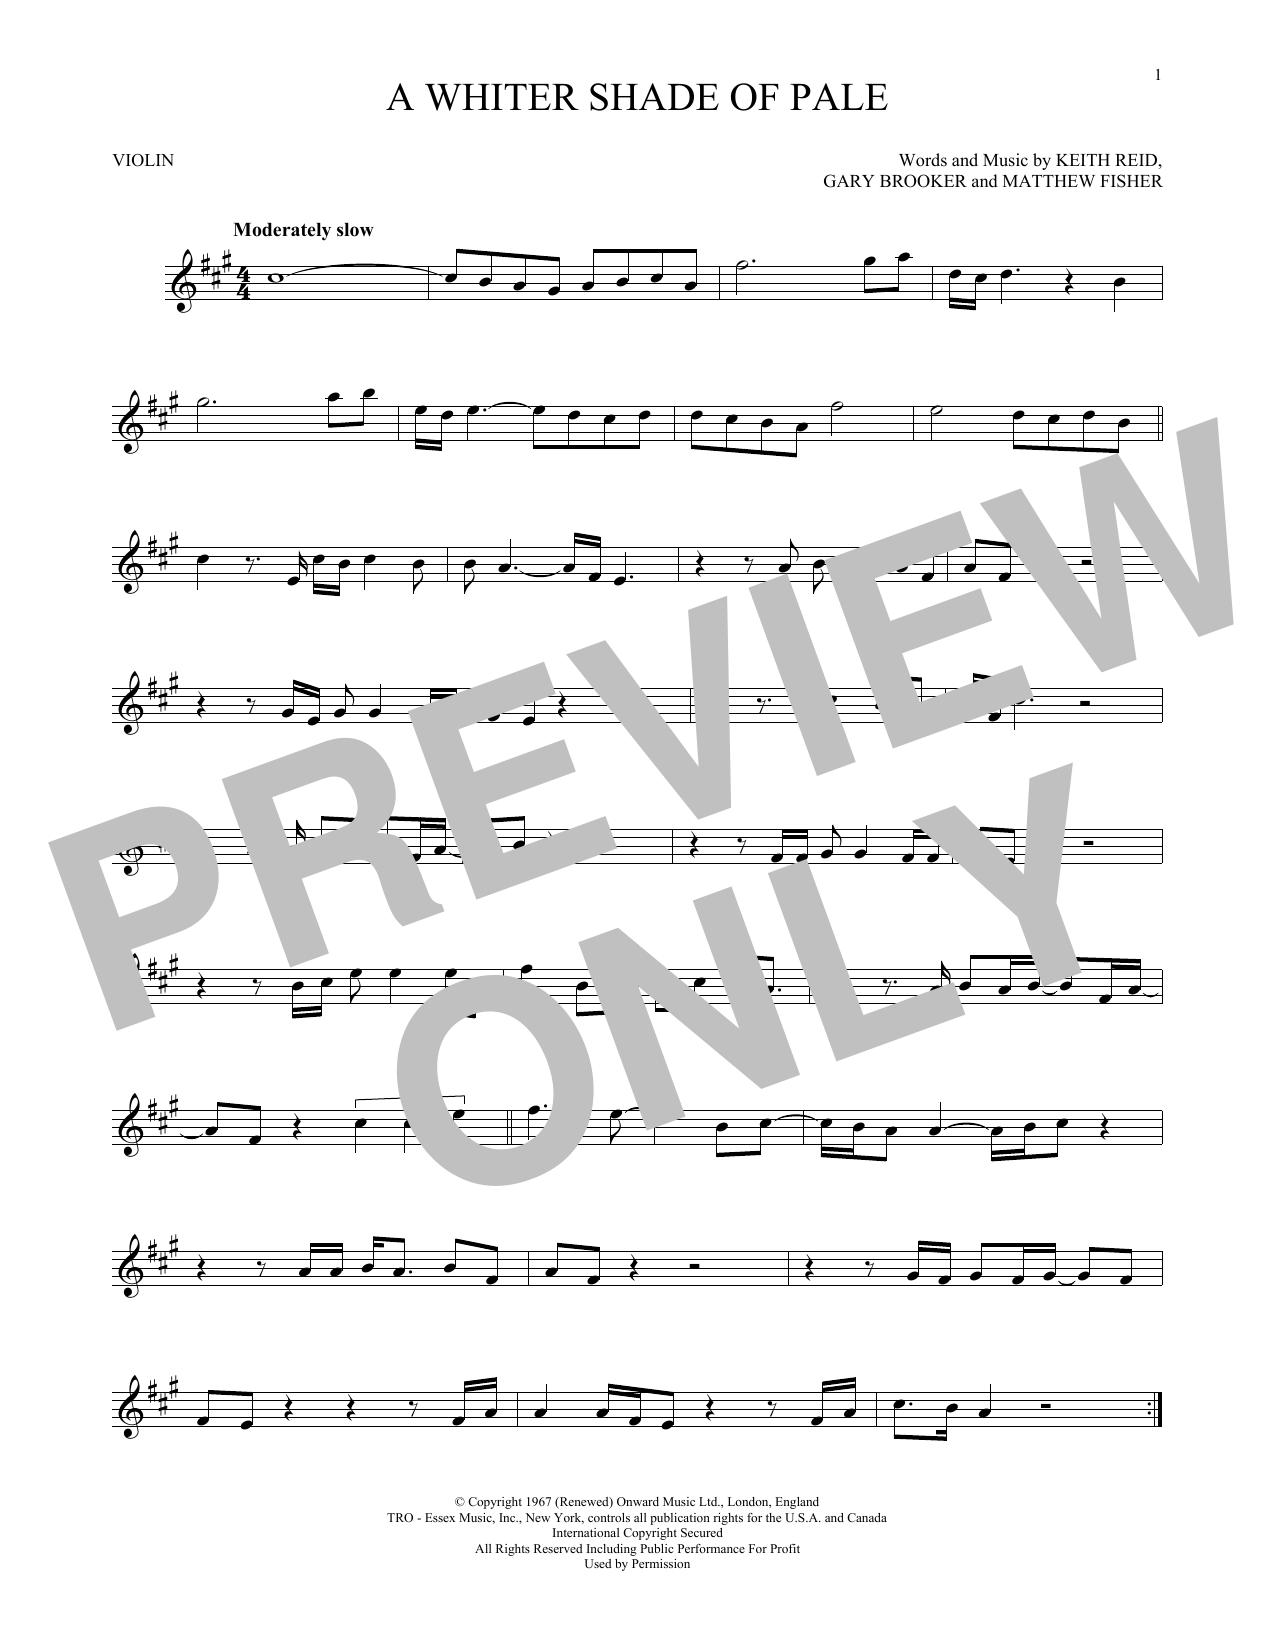 Procol Harum A Whiter Shade Of Pale Sheet Music Notes Chords